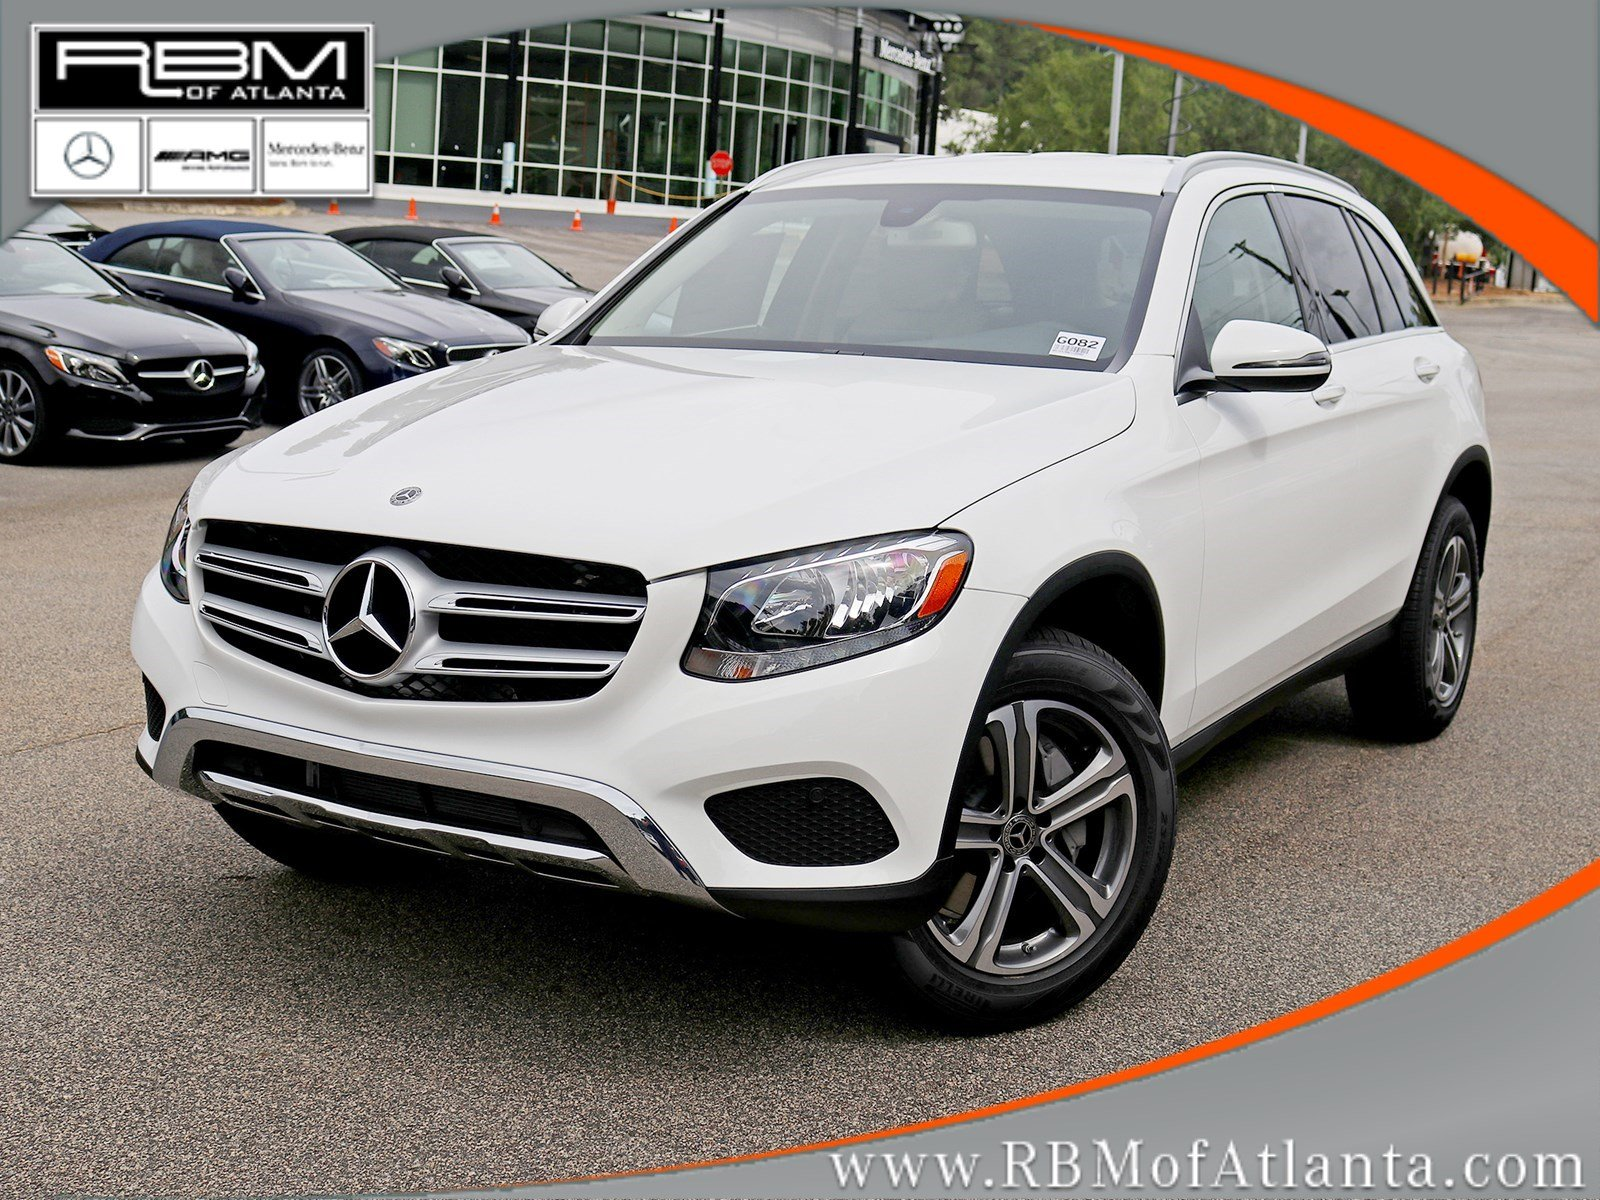 New 2019 Mercedes Benz GLC GLC 300 SUV in Atlanta G082